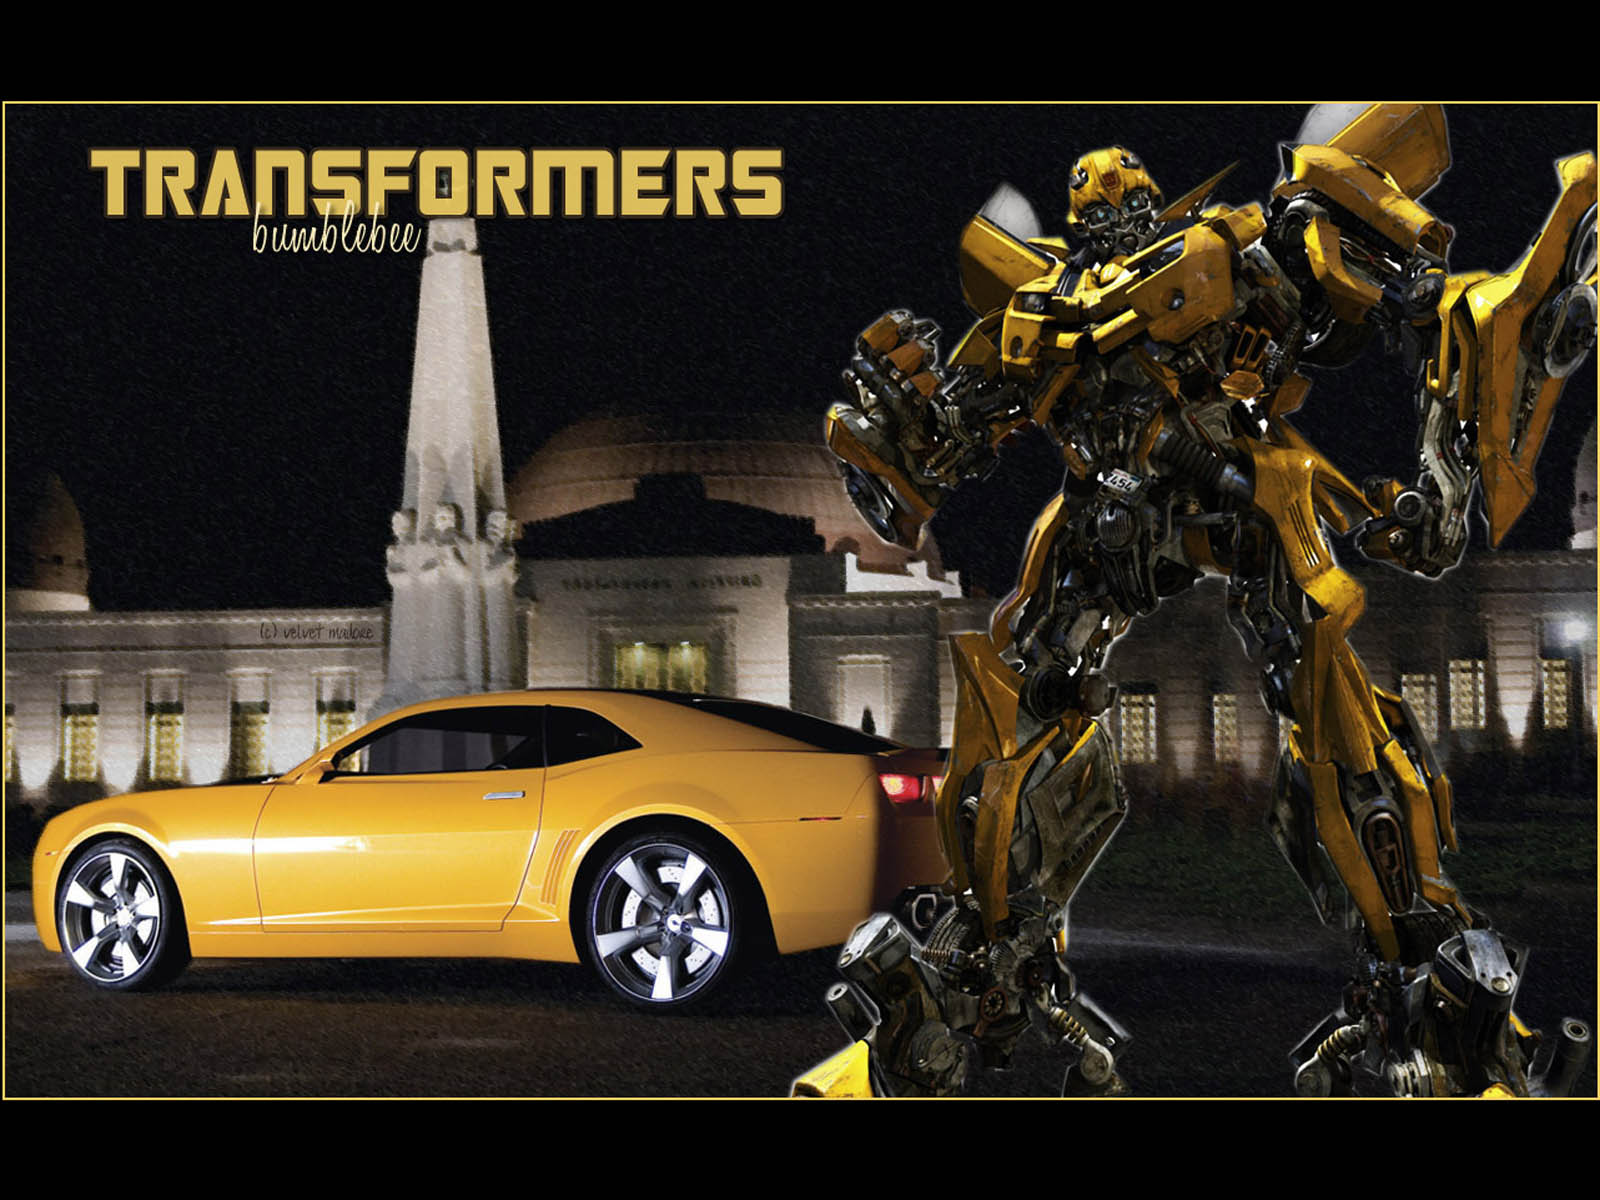 Wallpaper transformers - Transformers desktop backgrounds ...